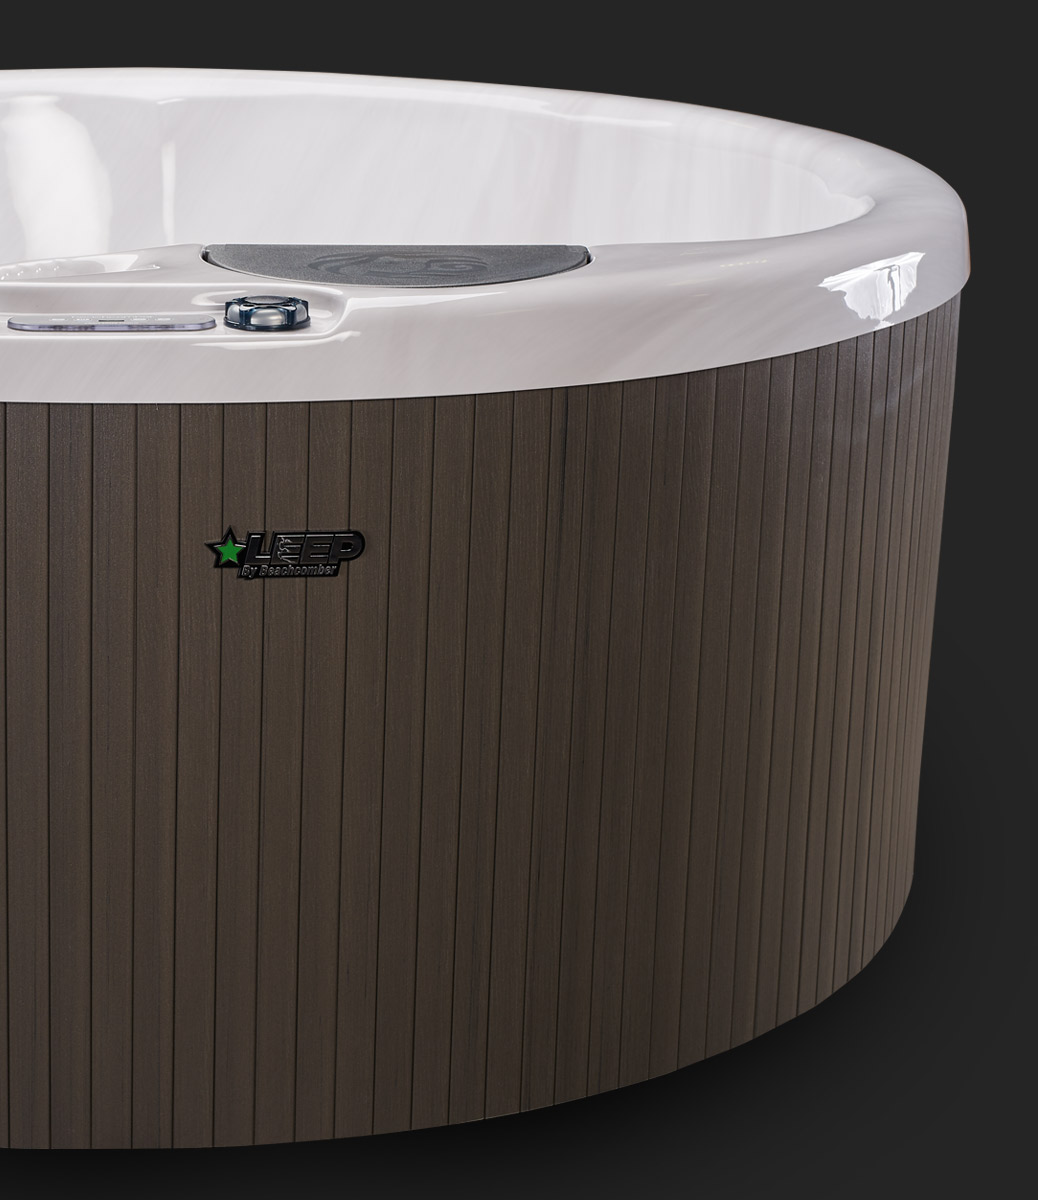 Beachcomber Hot Tubs Modèle 320